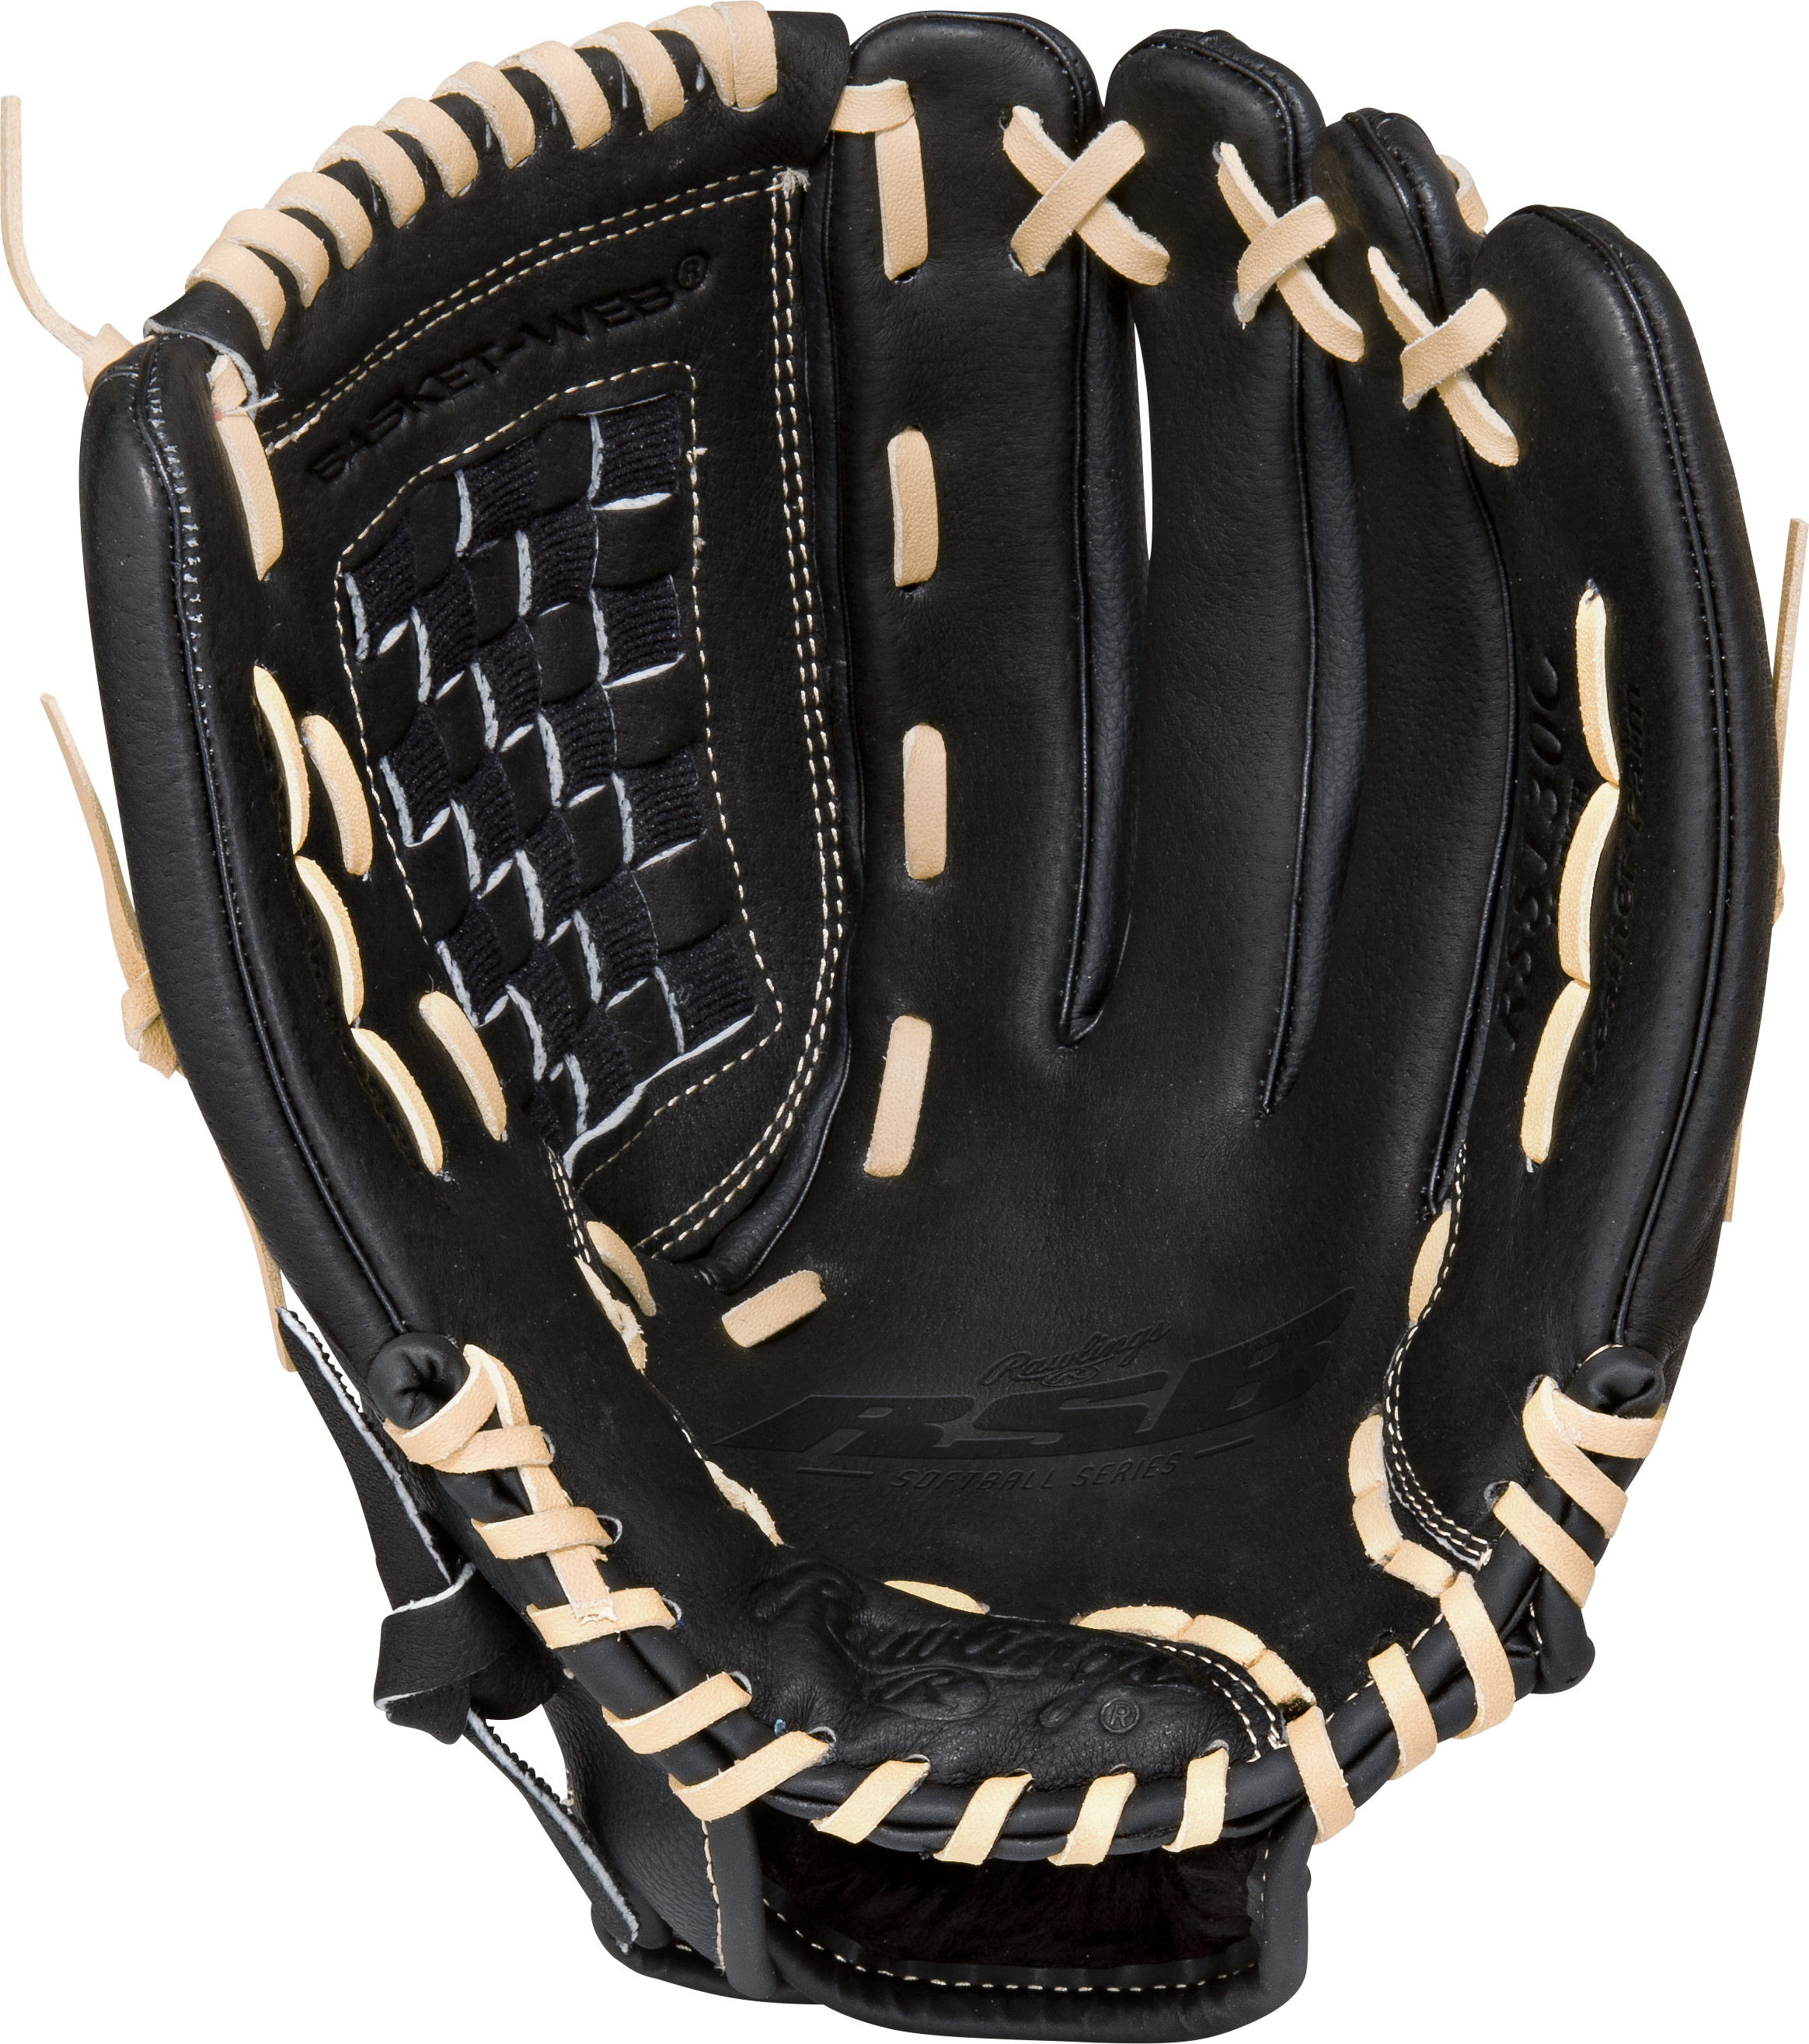 http://www.bestbatdeals.com/images/gloves/rawlings/RSS130C_palm.jpg